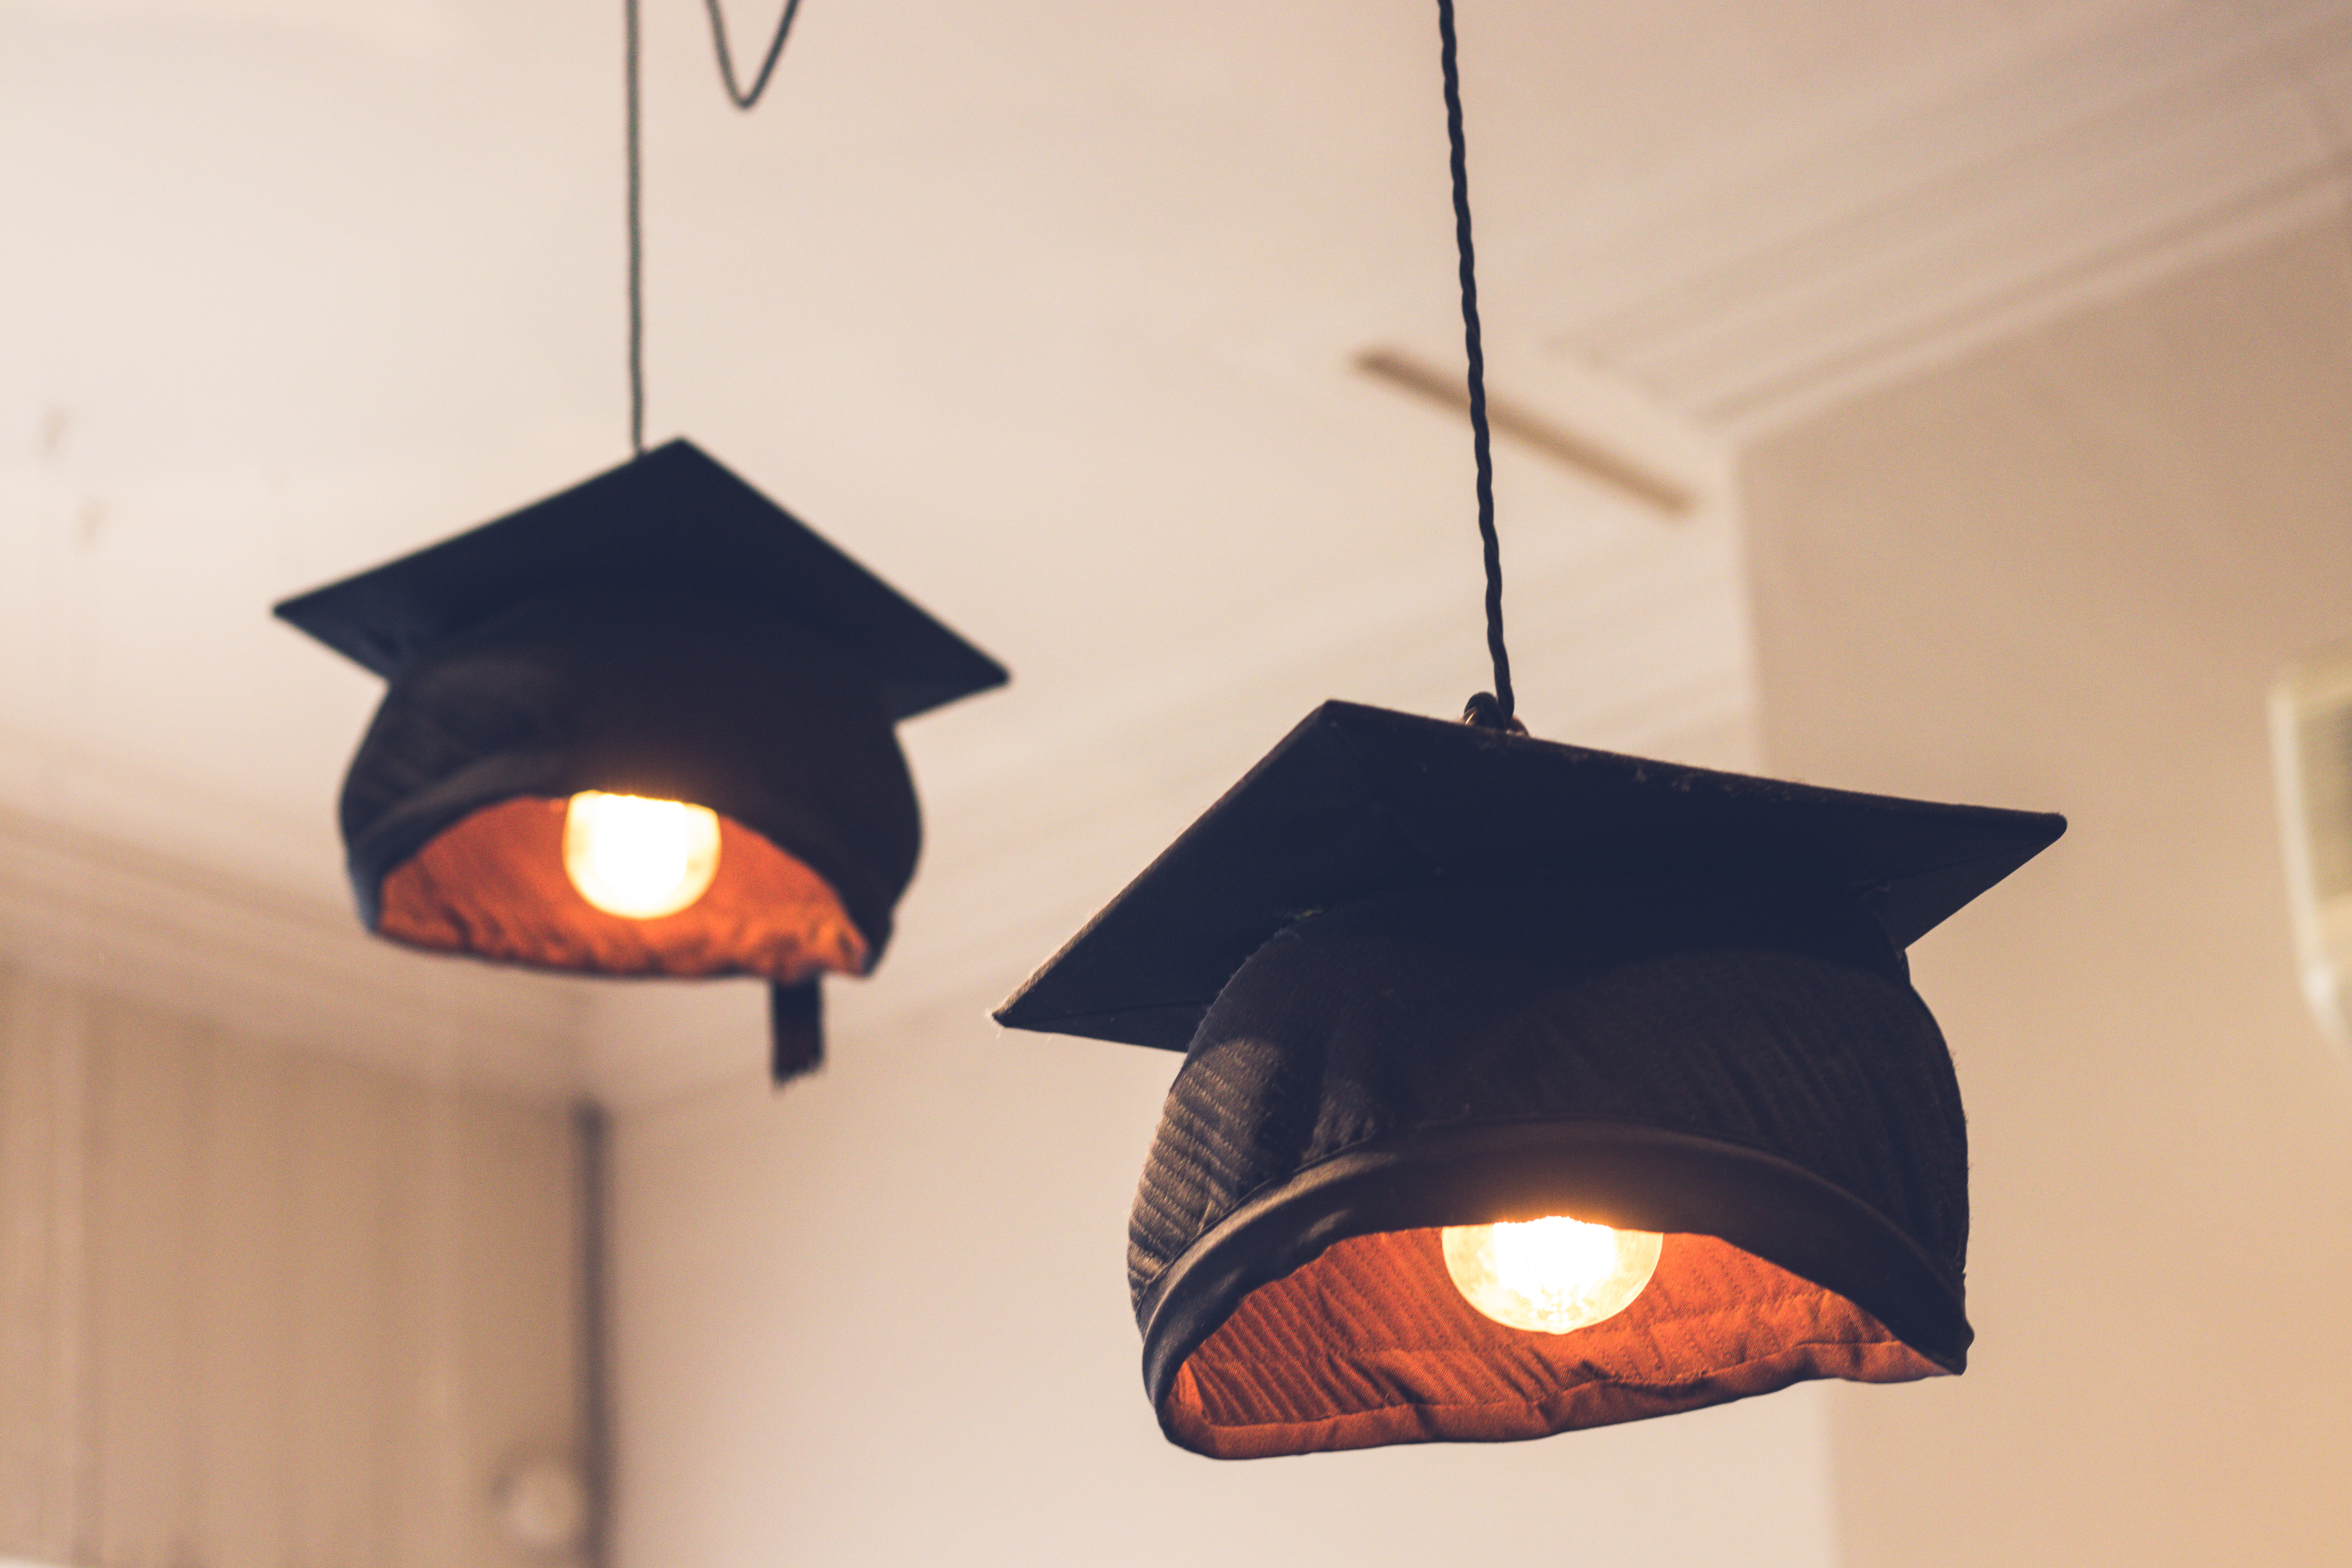 Two graduation caps (black) attached to lightbulbs, acting as lamp covers